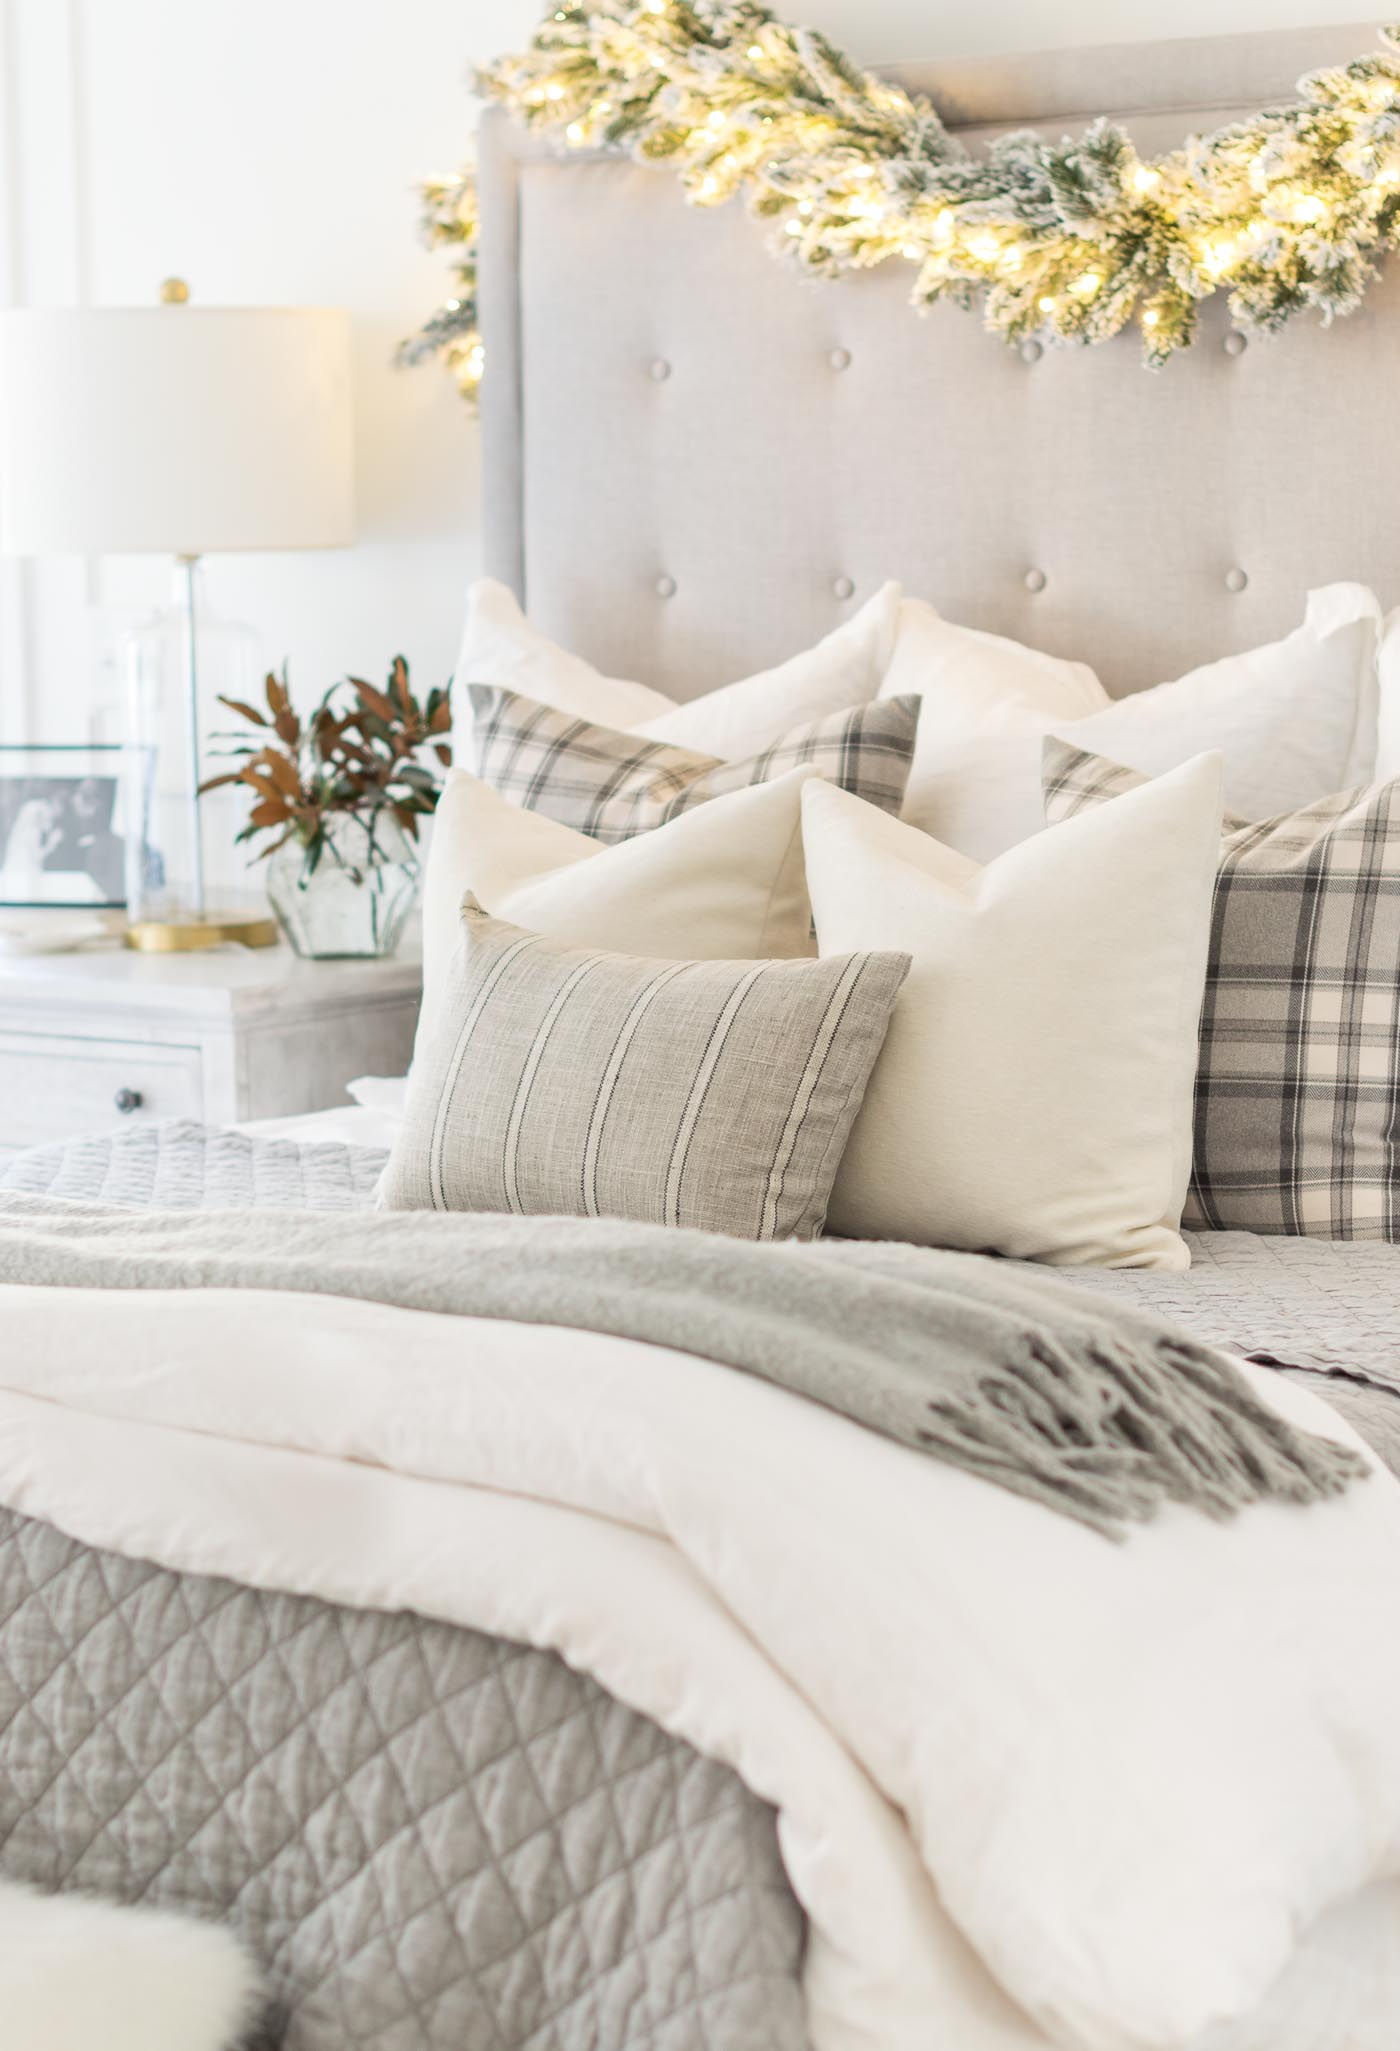 Christmas bedroom decorating ideas with plaid gray and neutral colors